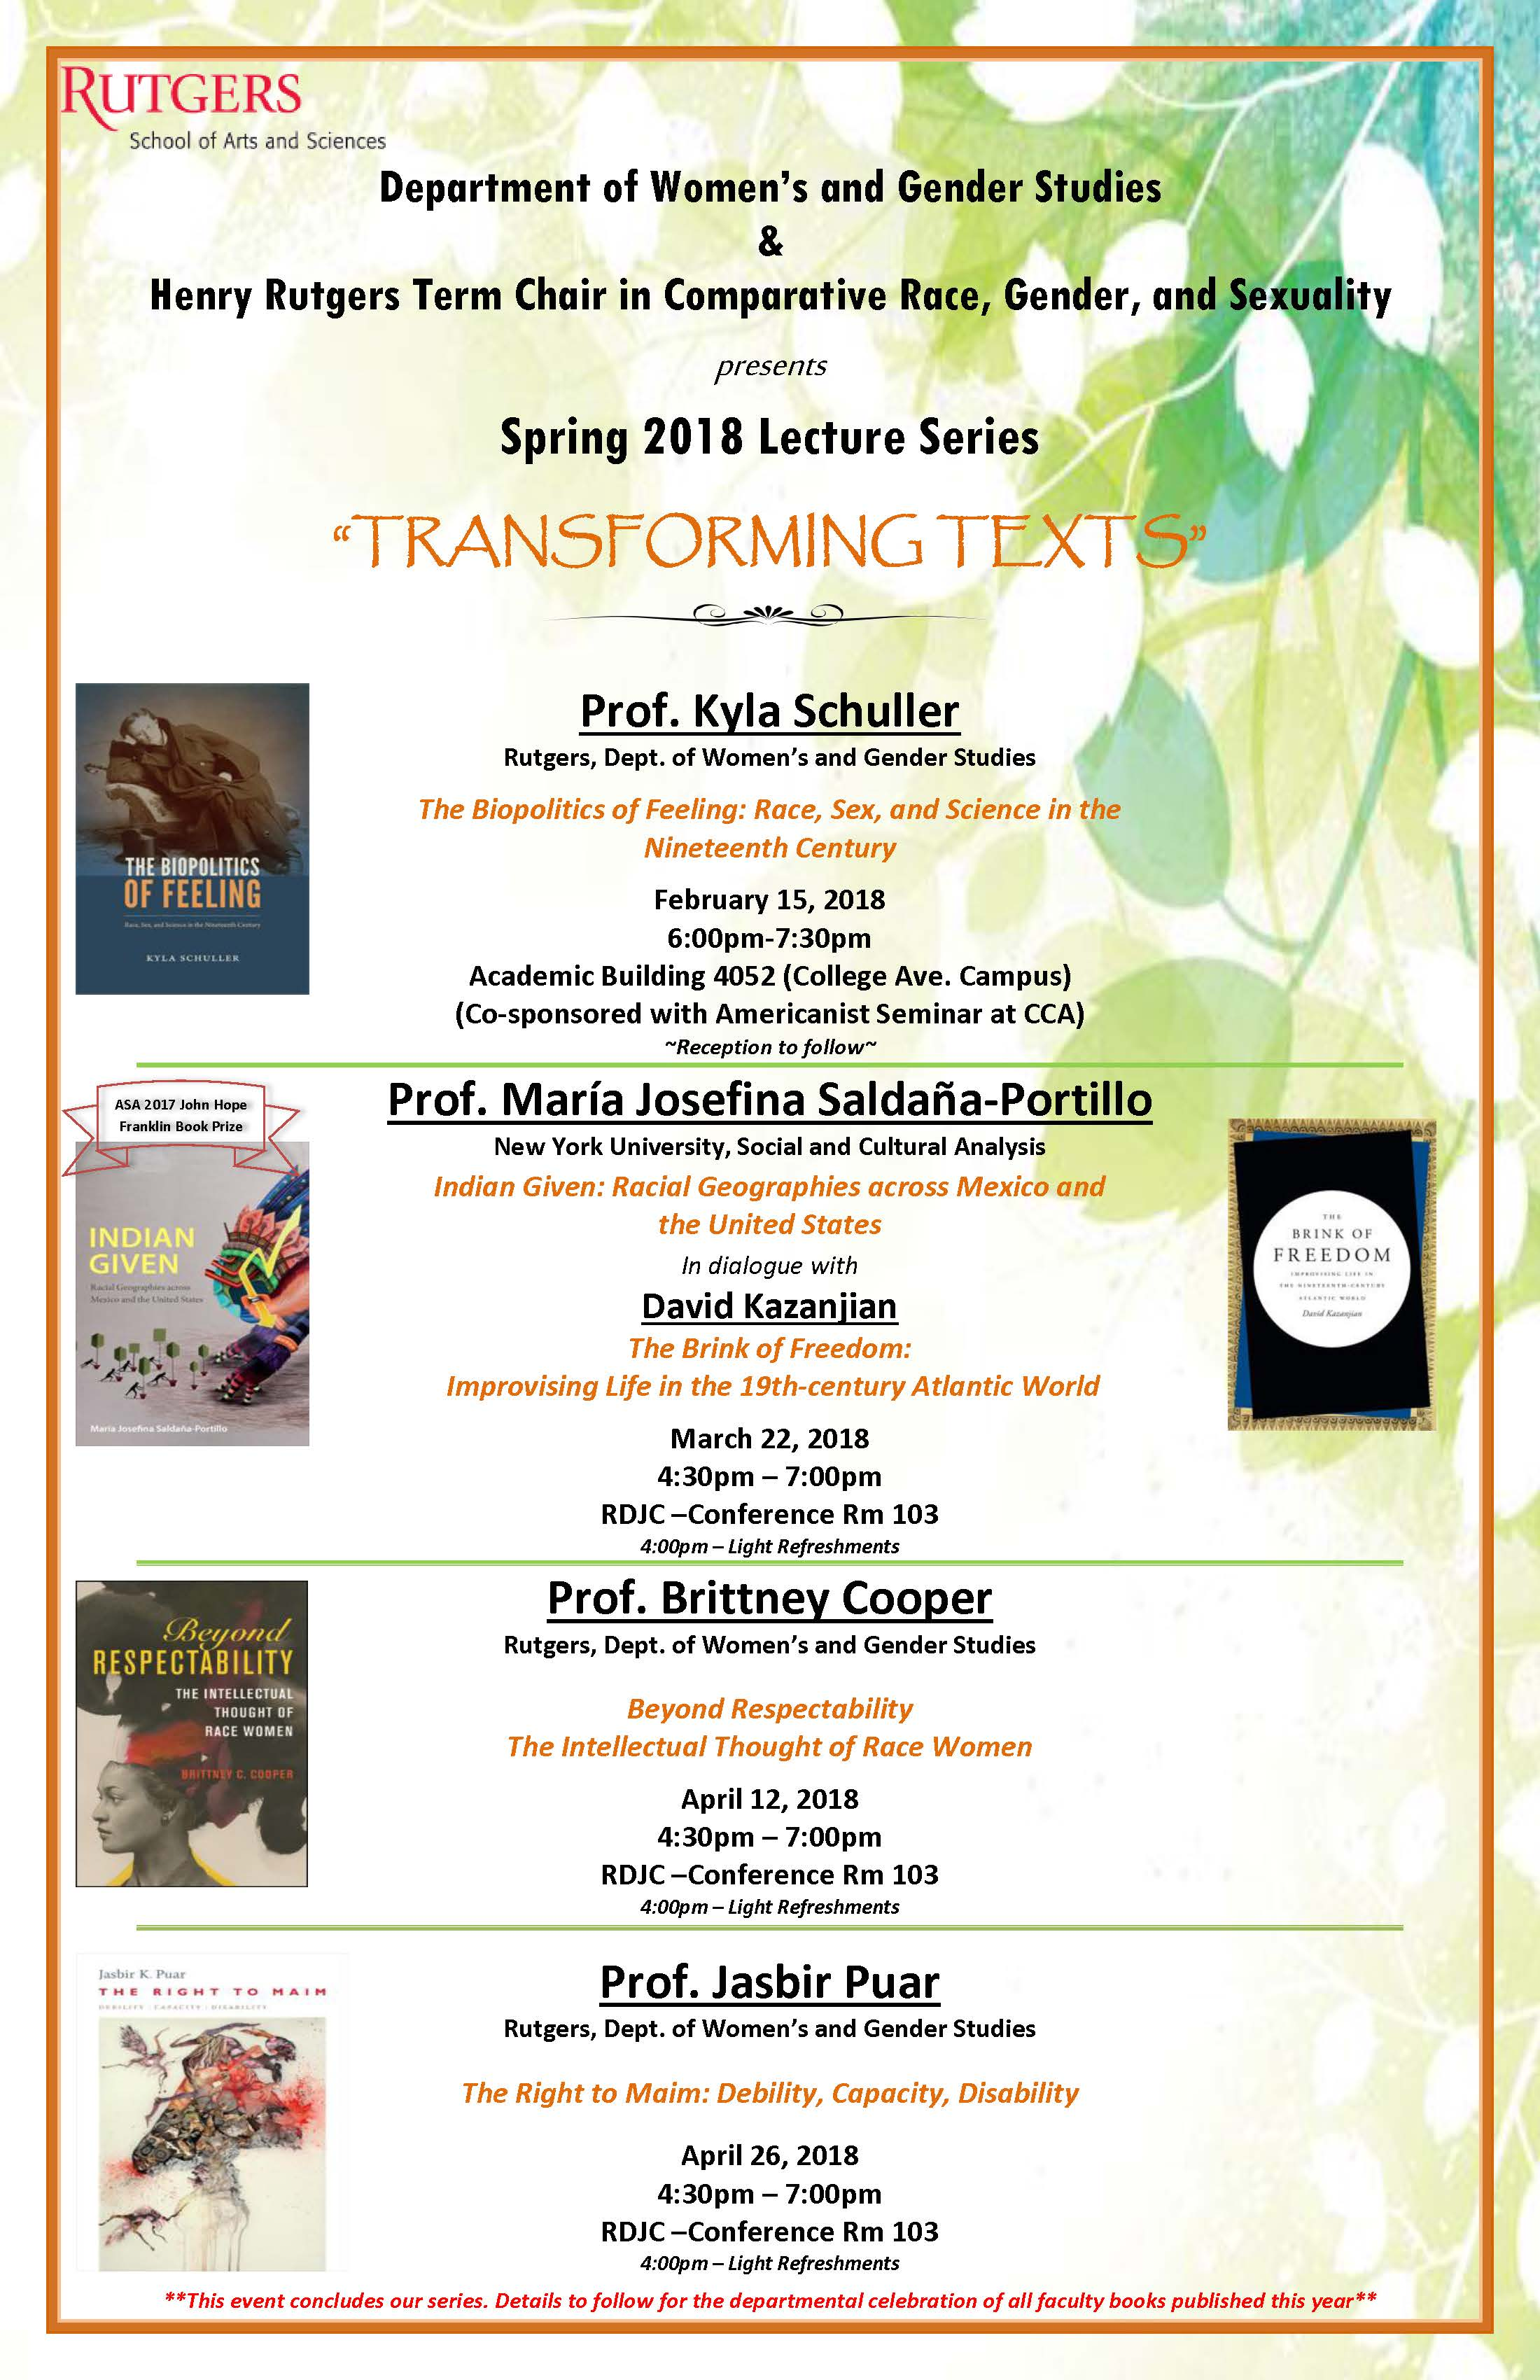 WGS HRTCCRGS Spring 2018 Lecture Series Flyer 3d9f4